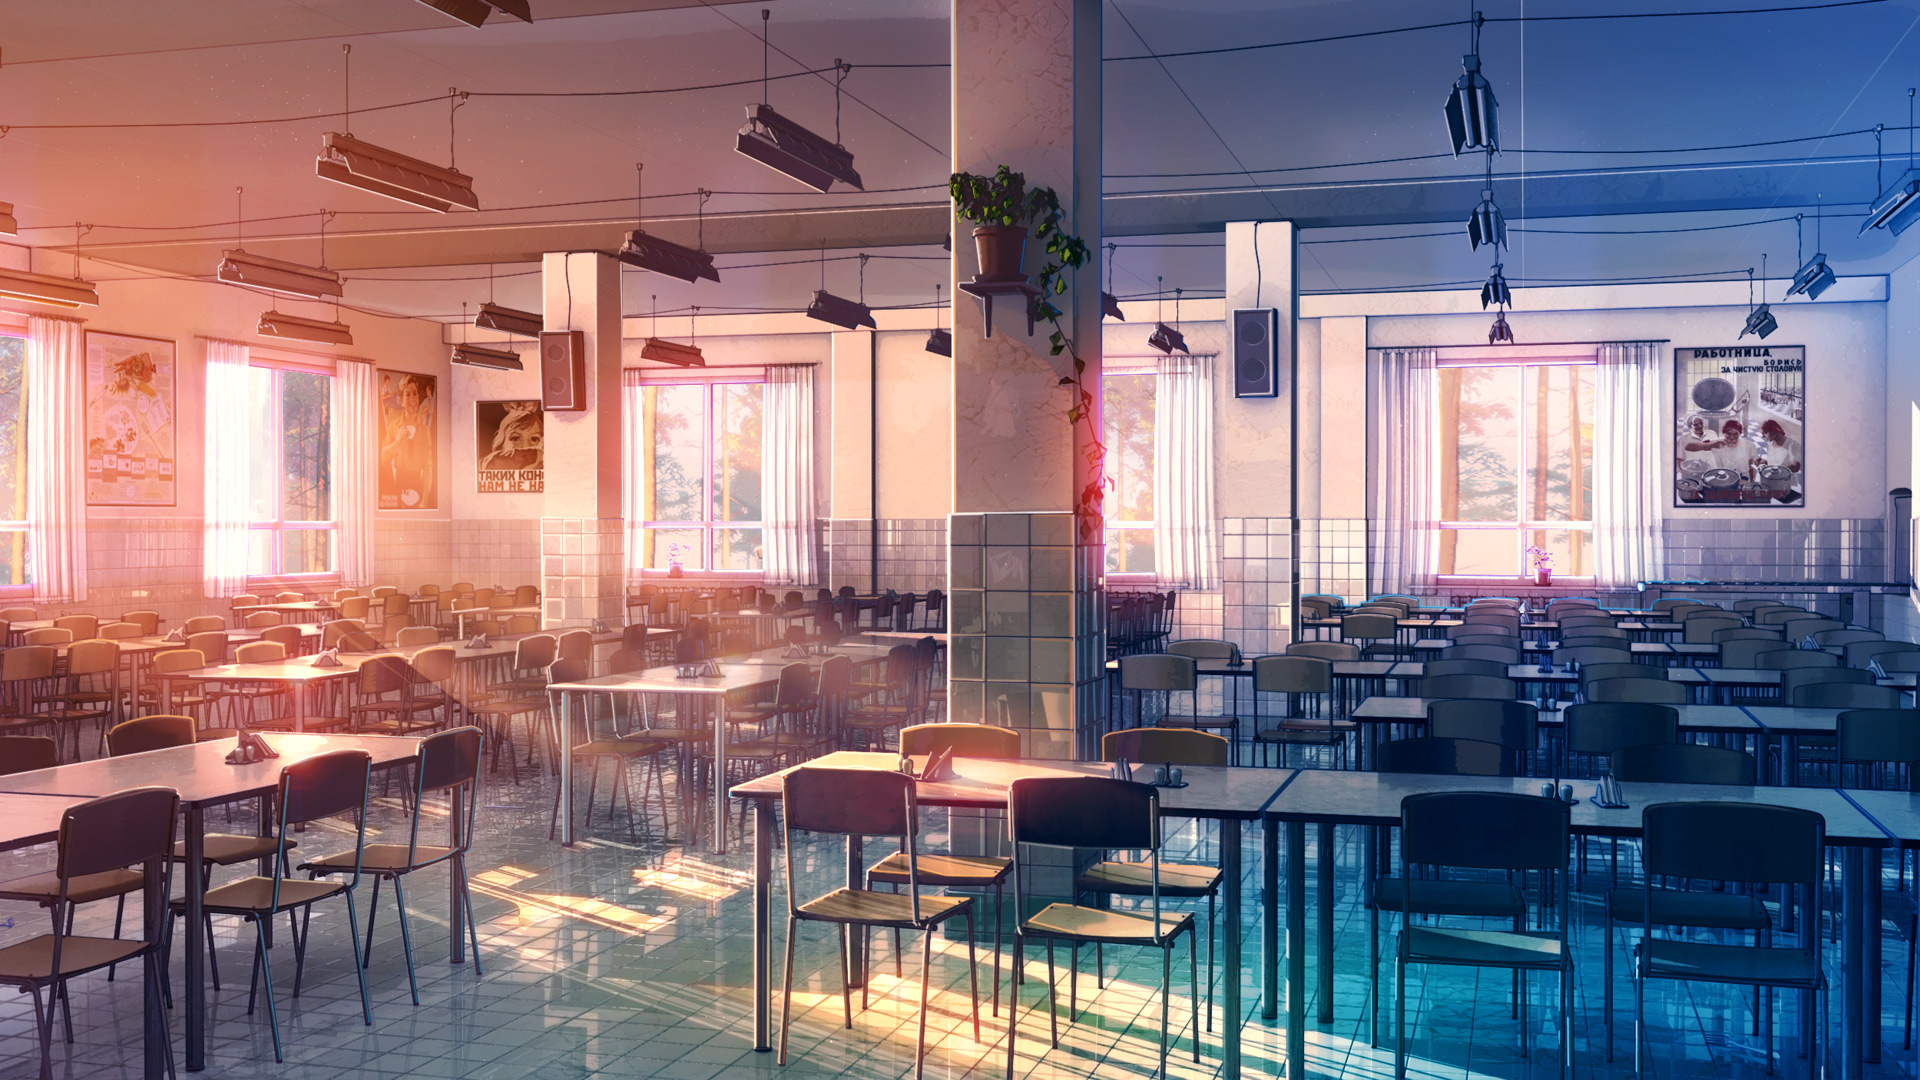 ANIME-ART-anime-scenery-school-cafeteria-tables-chairs-windows-sunlight-wallpaper-wp3401711